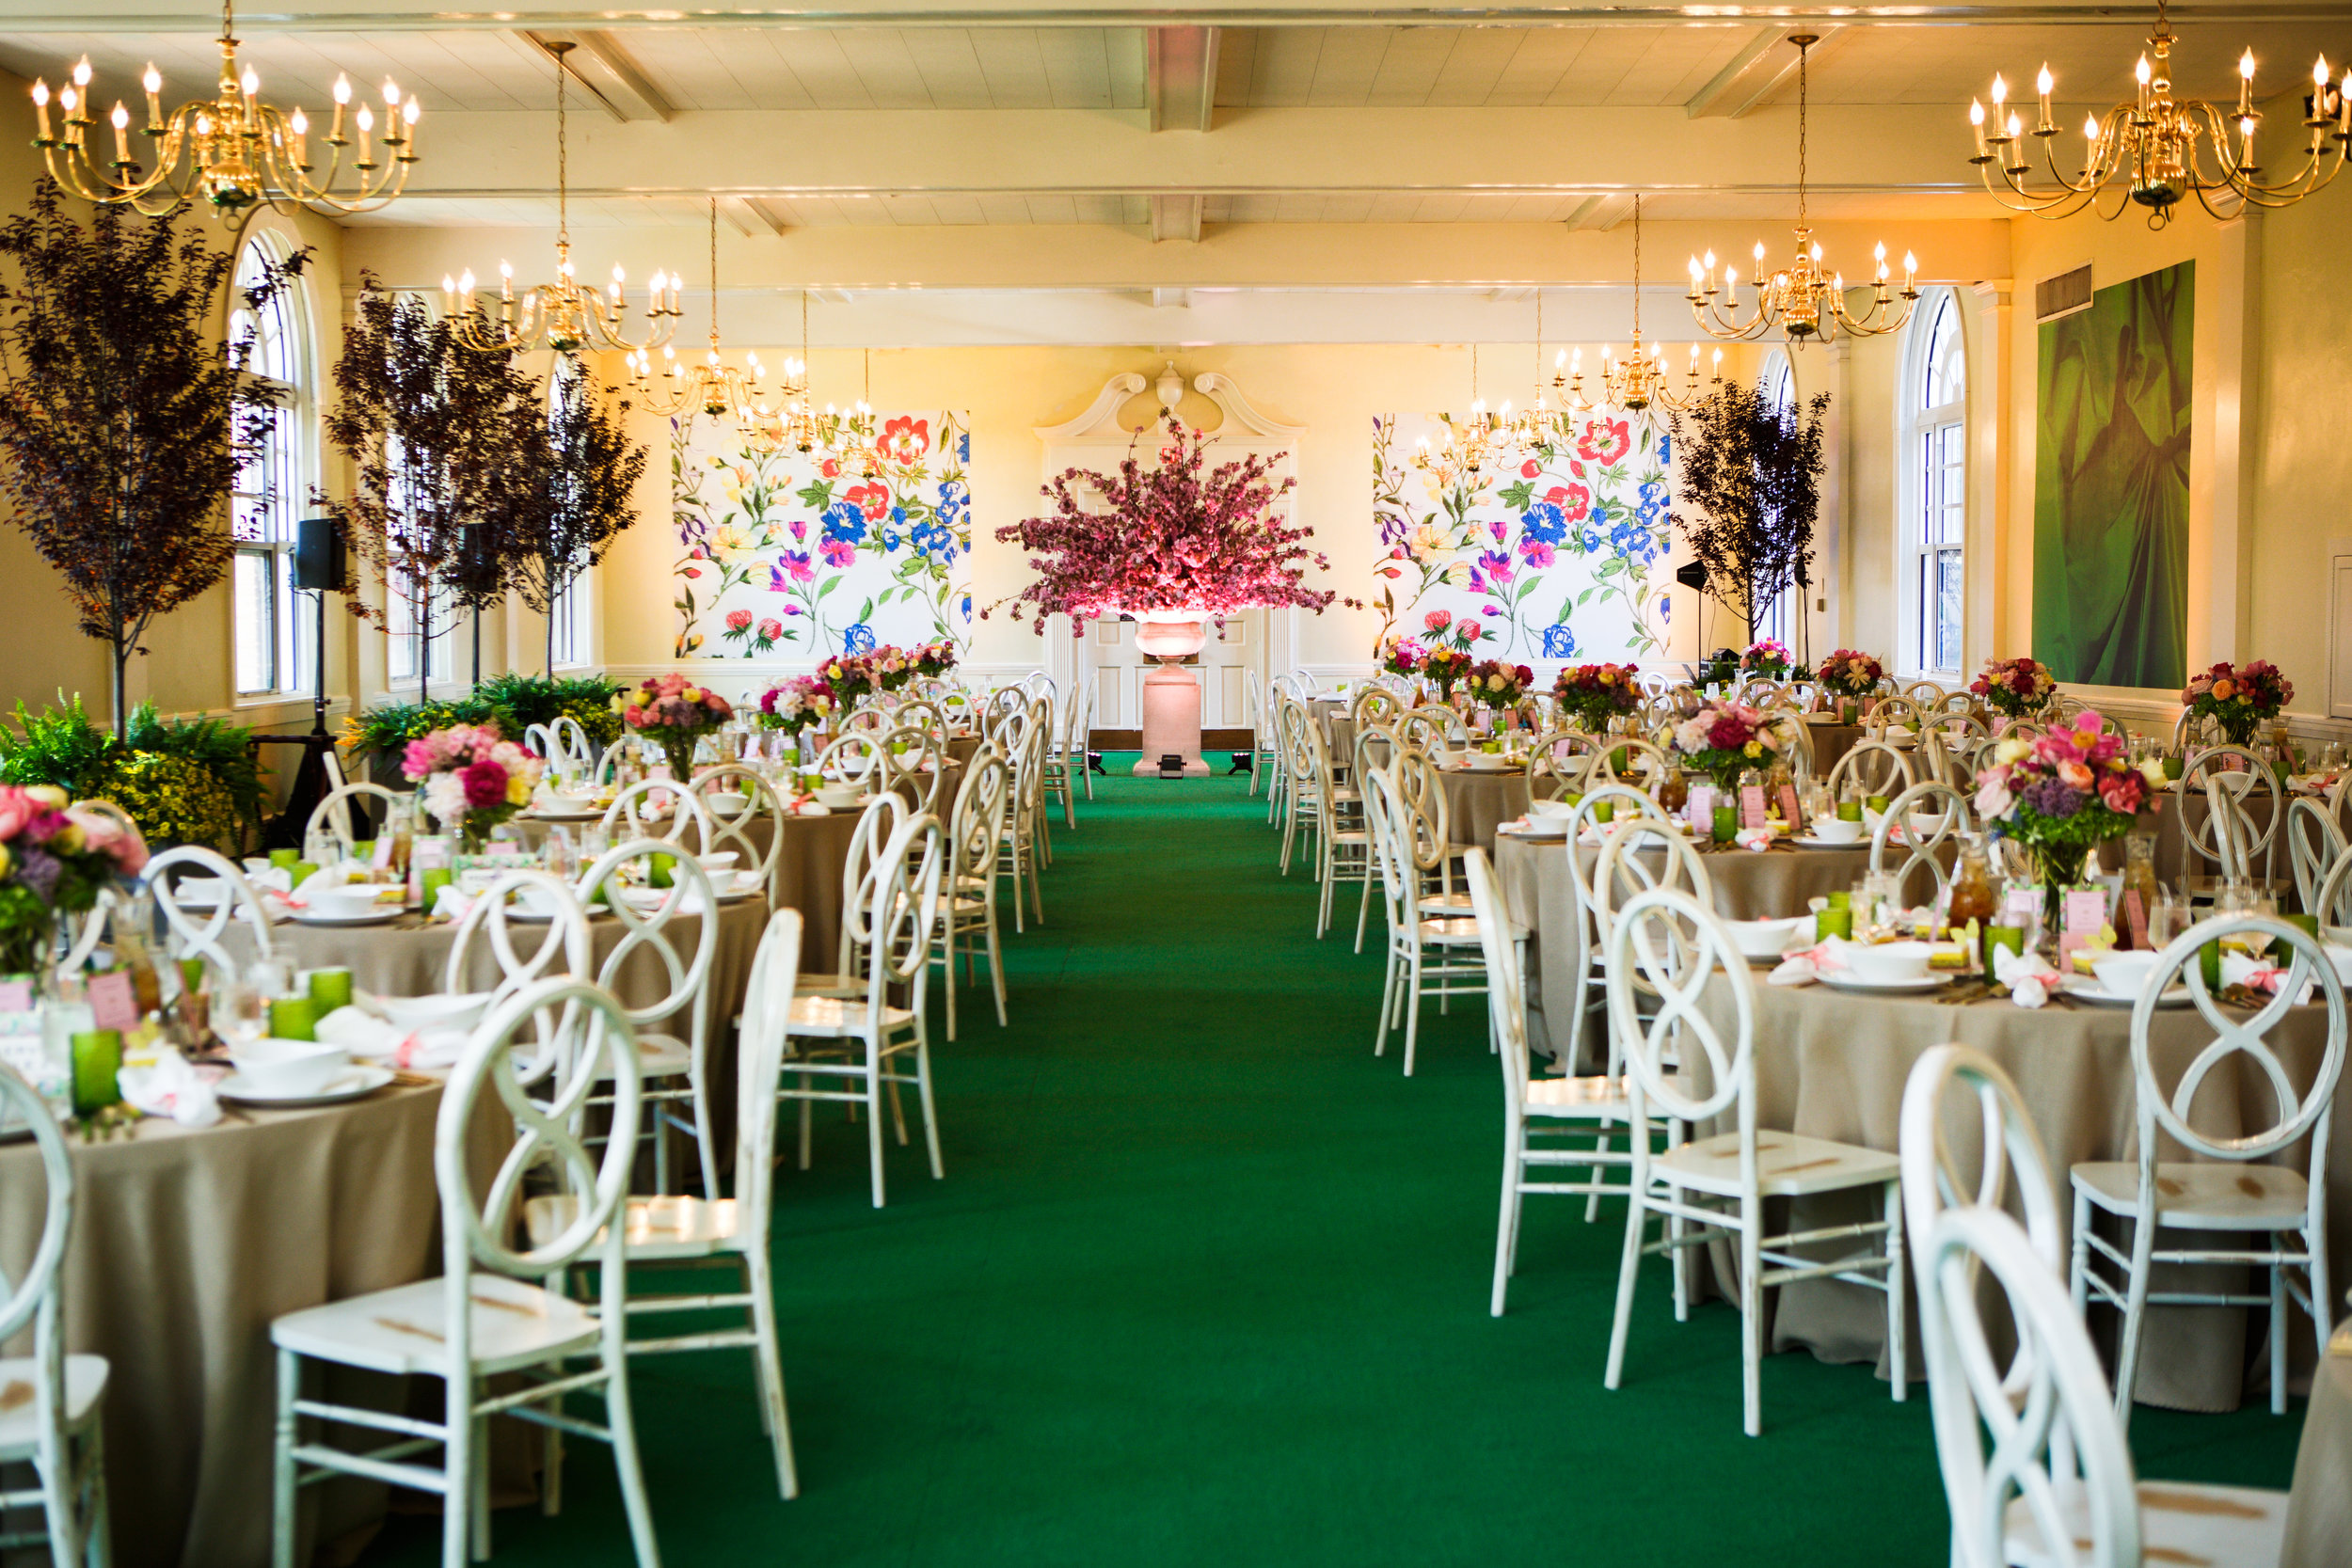 Catherine M. Austin Designs and Todd Murphy Events transformed the space into a spring garden inspired by fashion designer Oscar de la Renta.